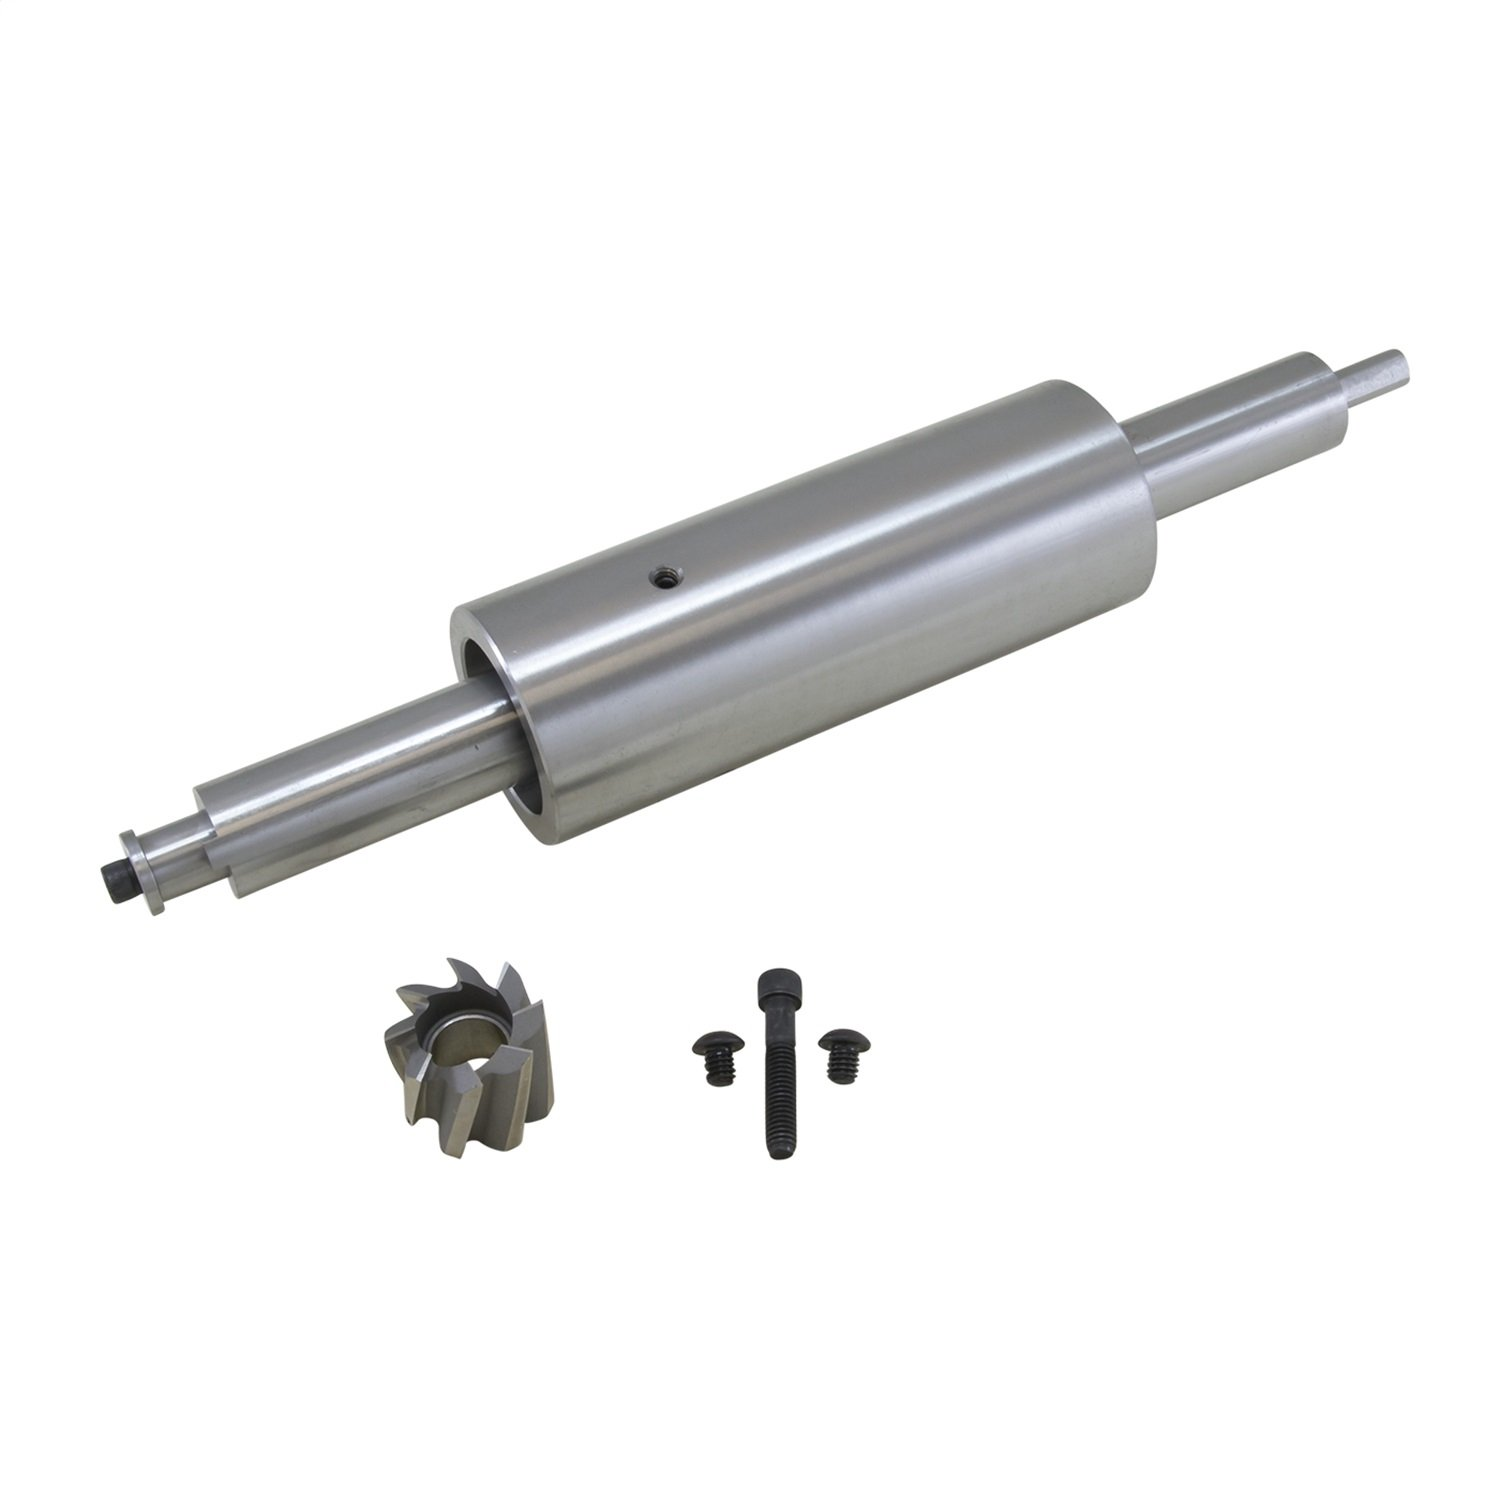 Spindle Boring Tool for 35-Spline Dana 60 Differential YT H31 Yukon Gear /& Axle